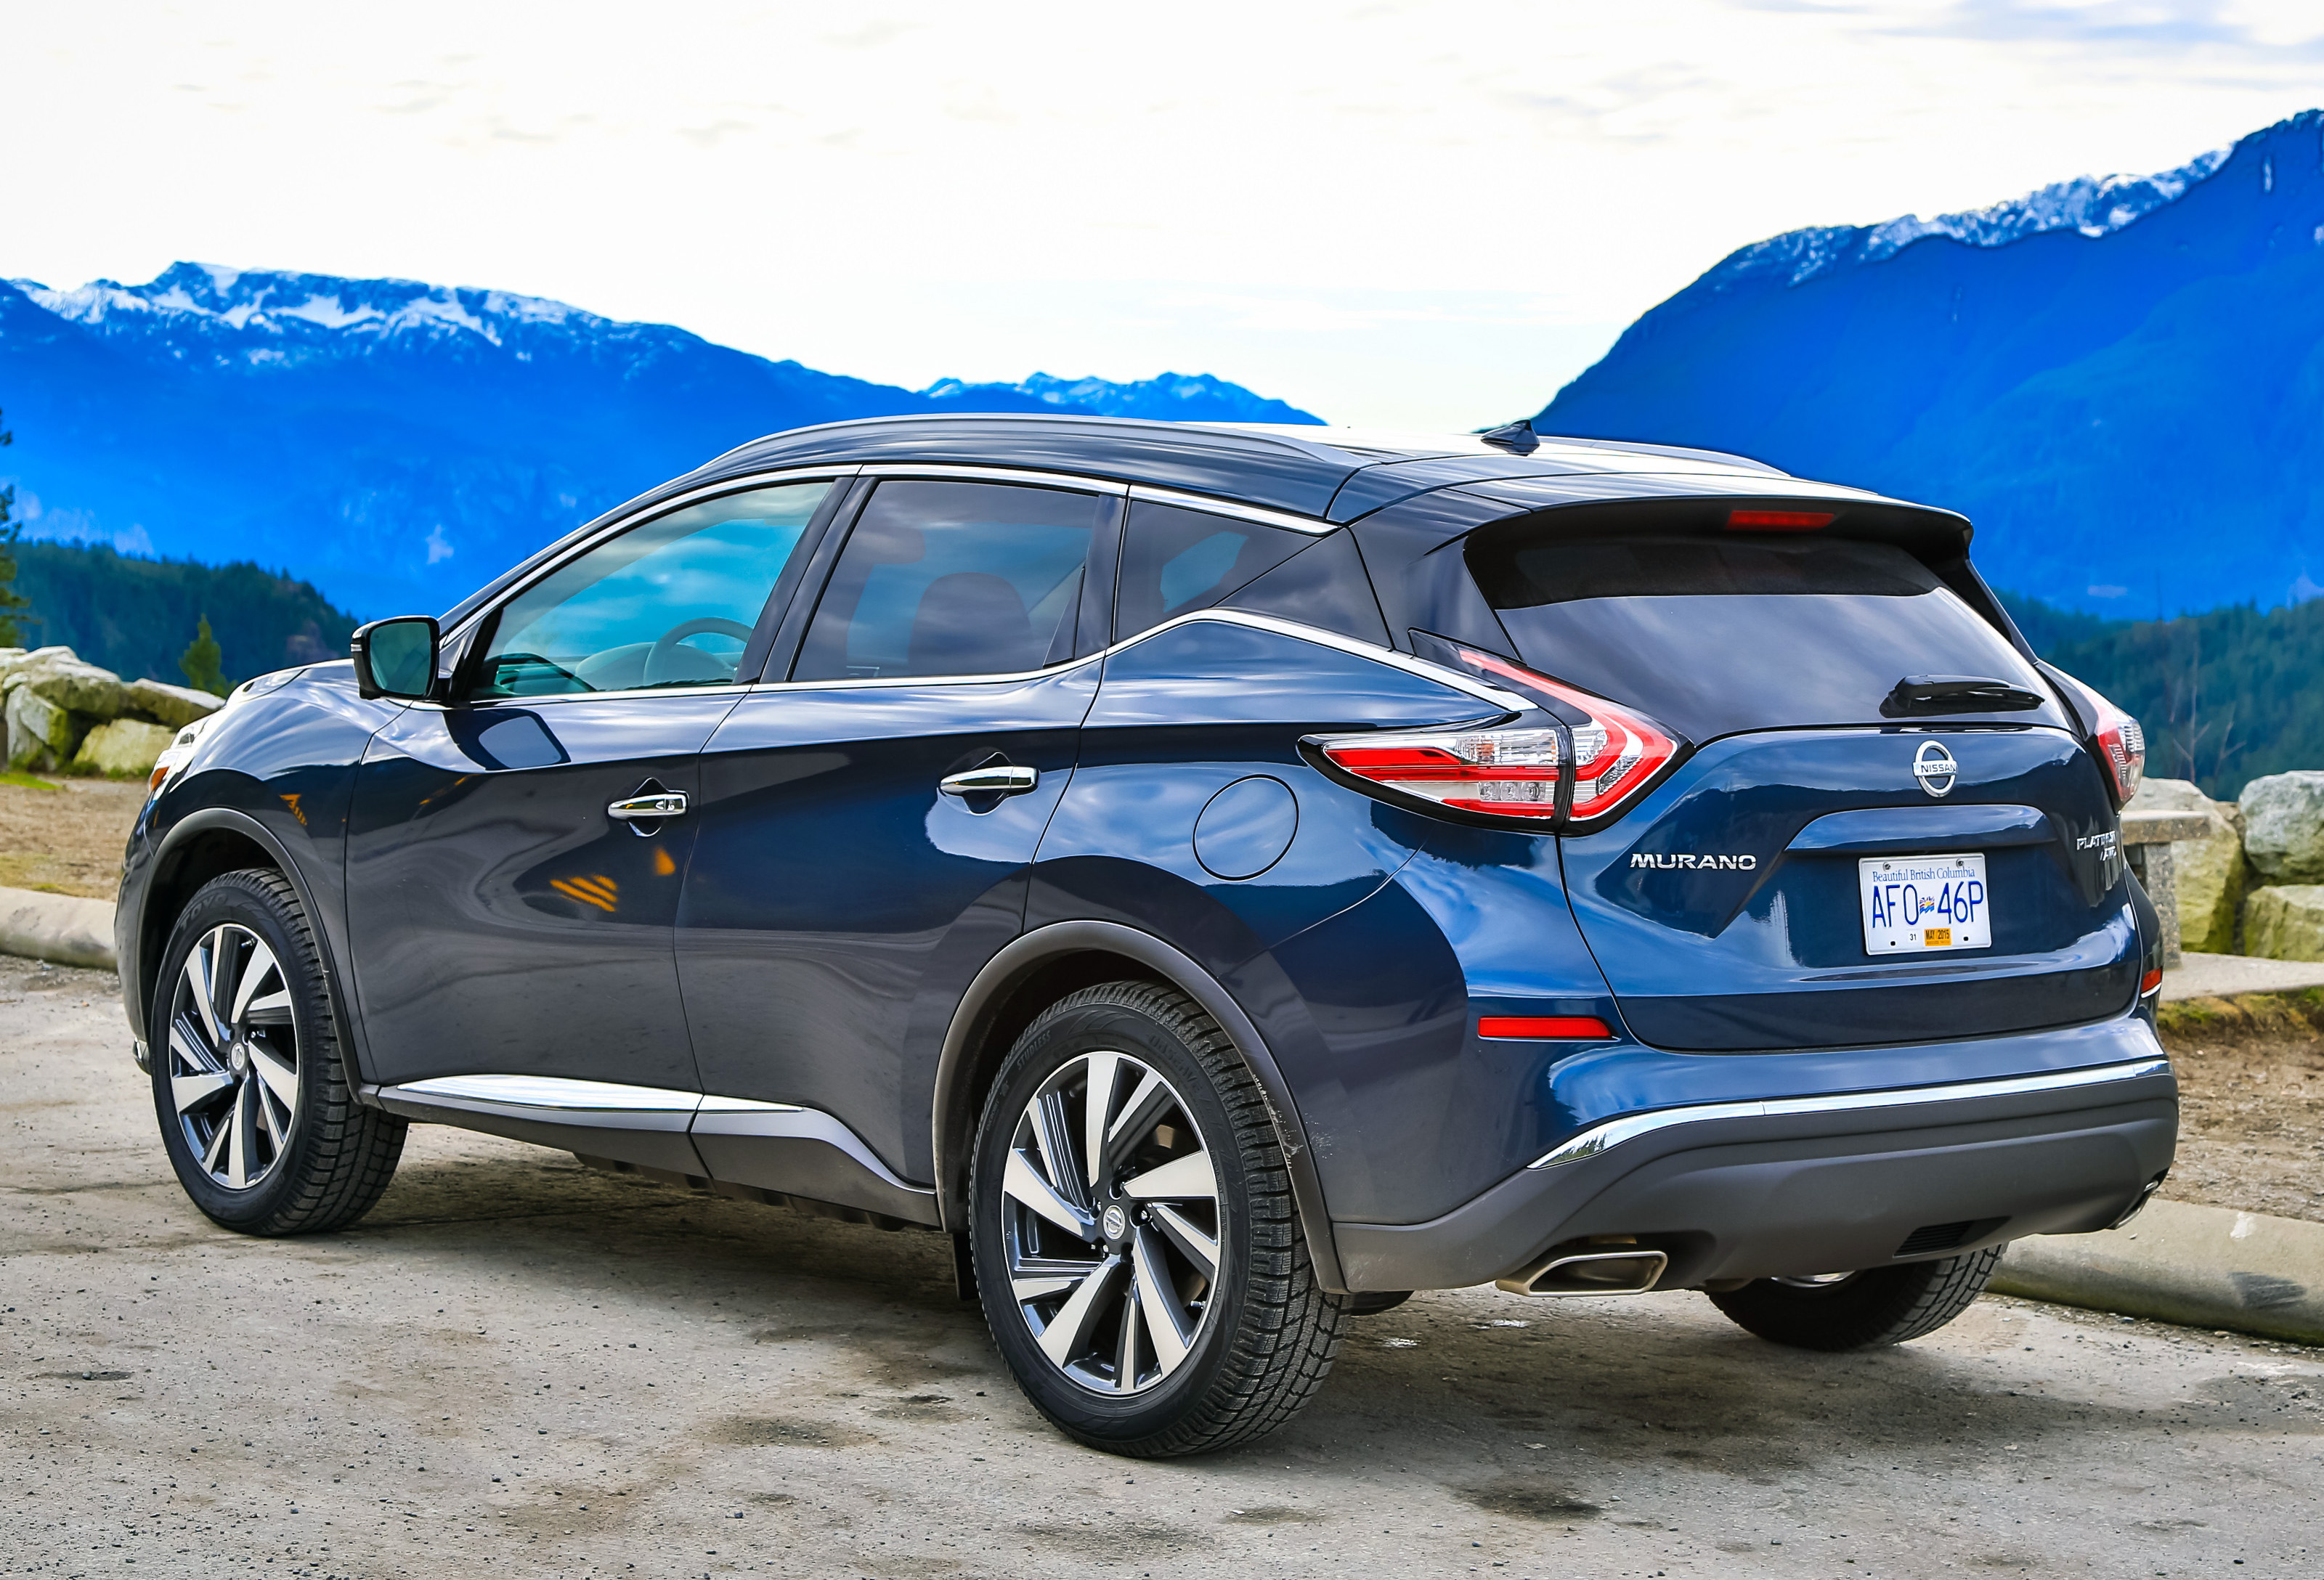 2015 Nissan Maxima >> 2015 Nissan Murano Review – WHEELS.ca